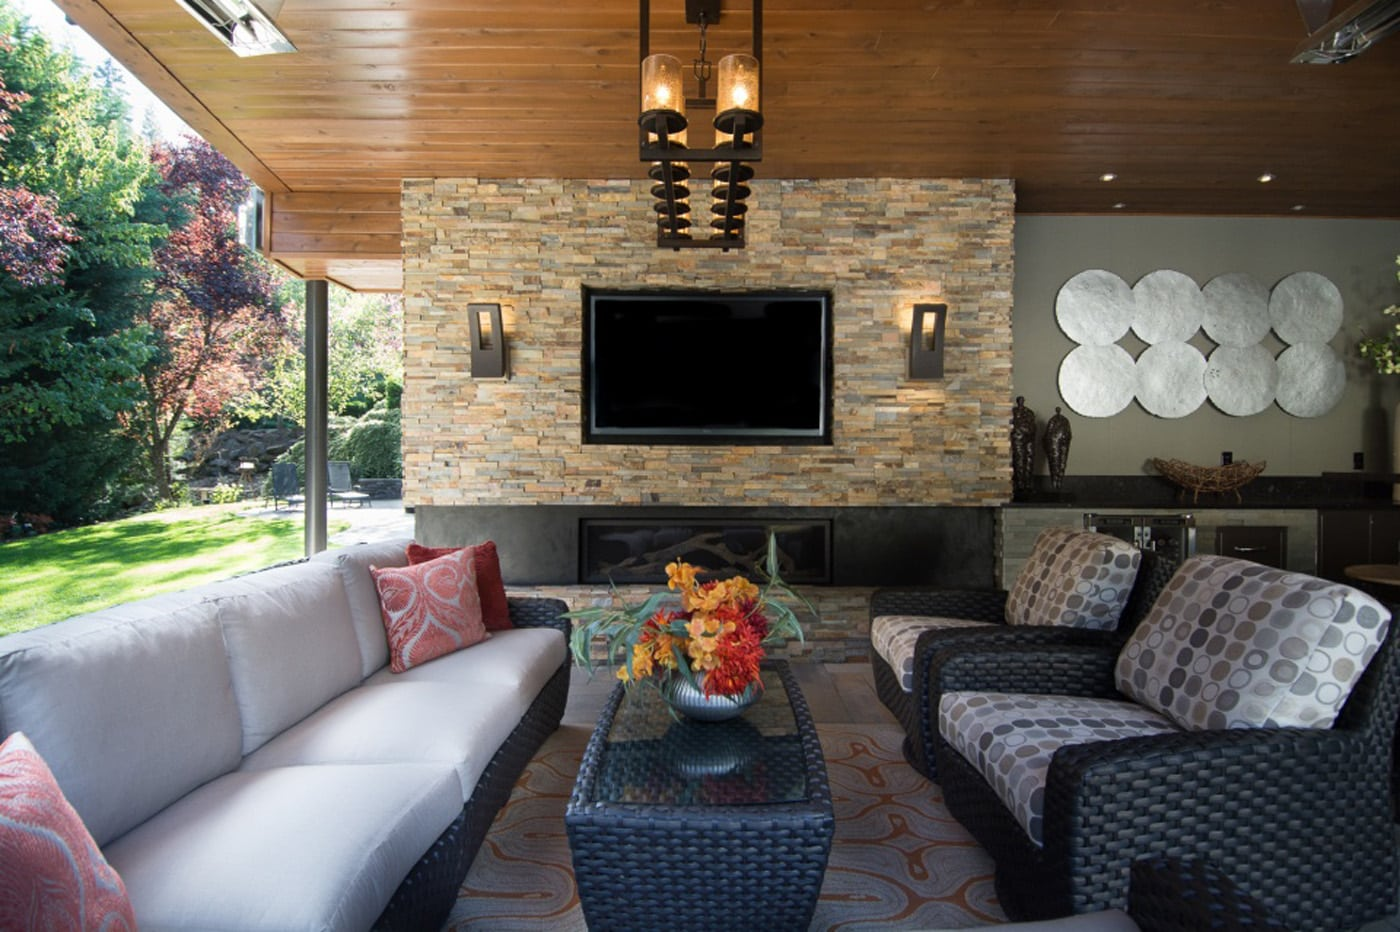 Pangaea Interior Design | Outdoor Living Room and Bar